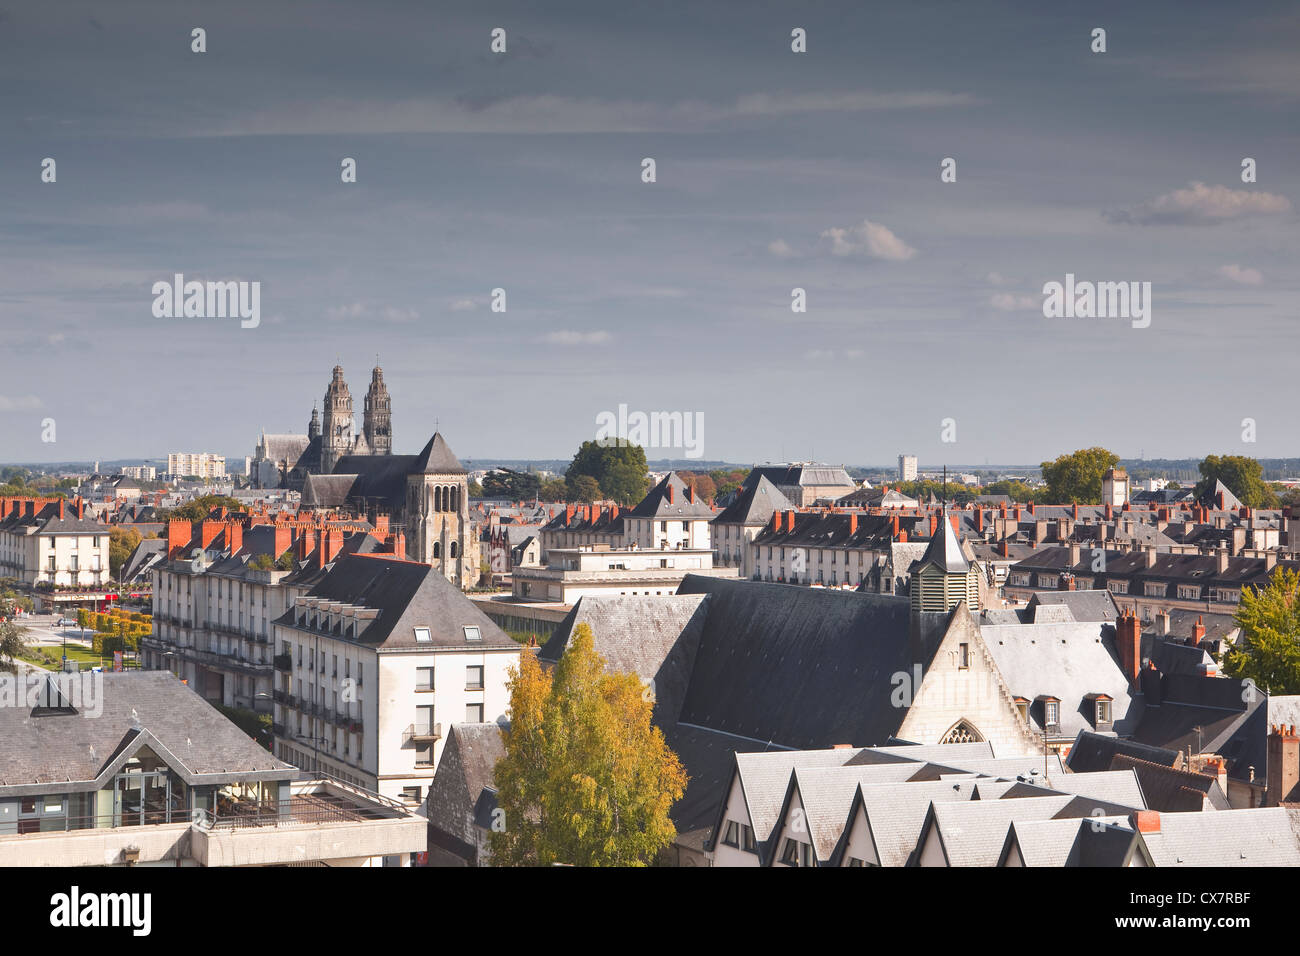 Looking across the rooftops of the city of Tours in France - Stock Image